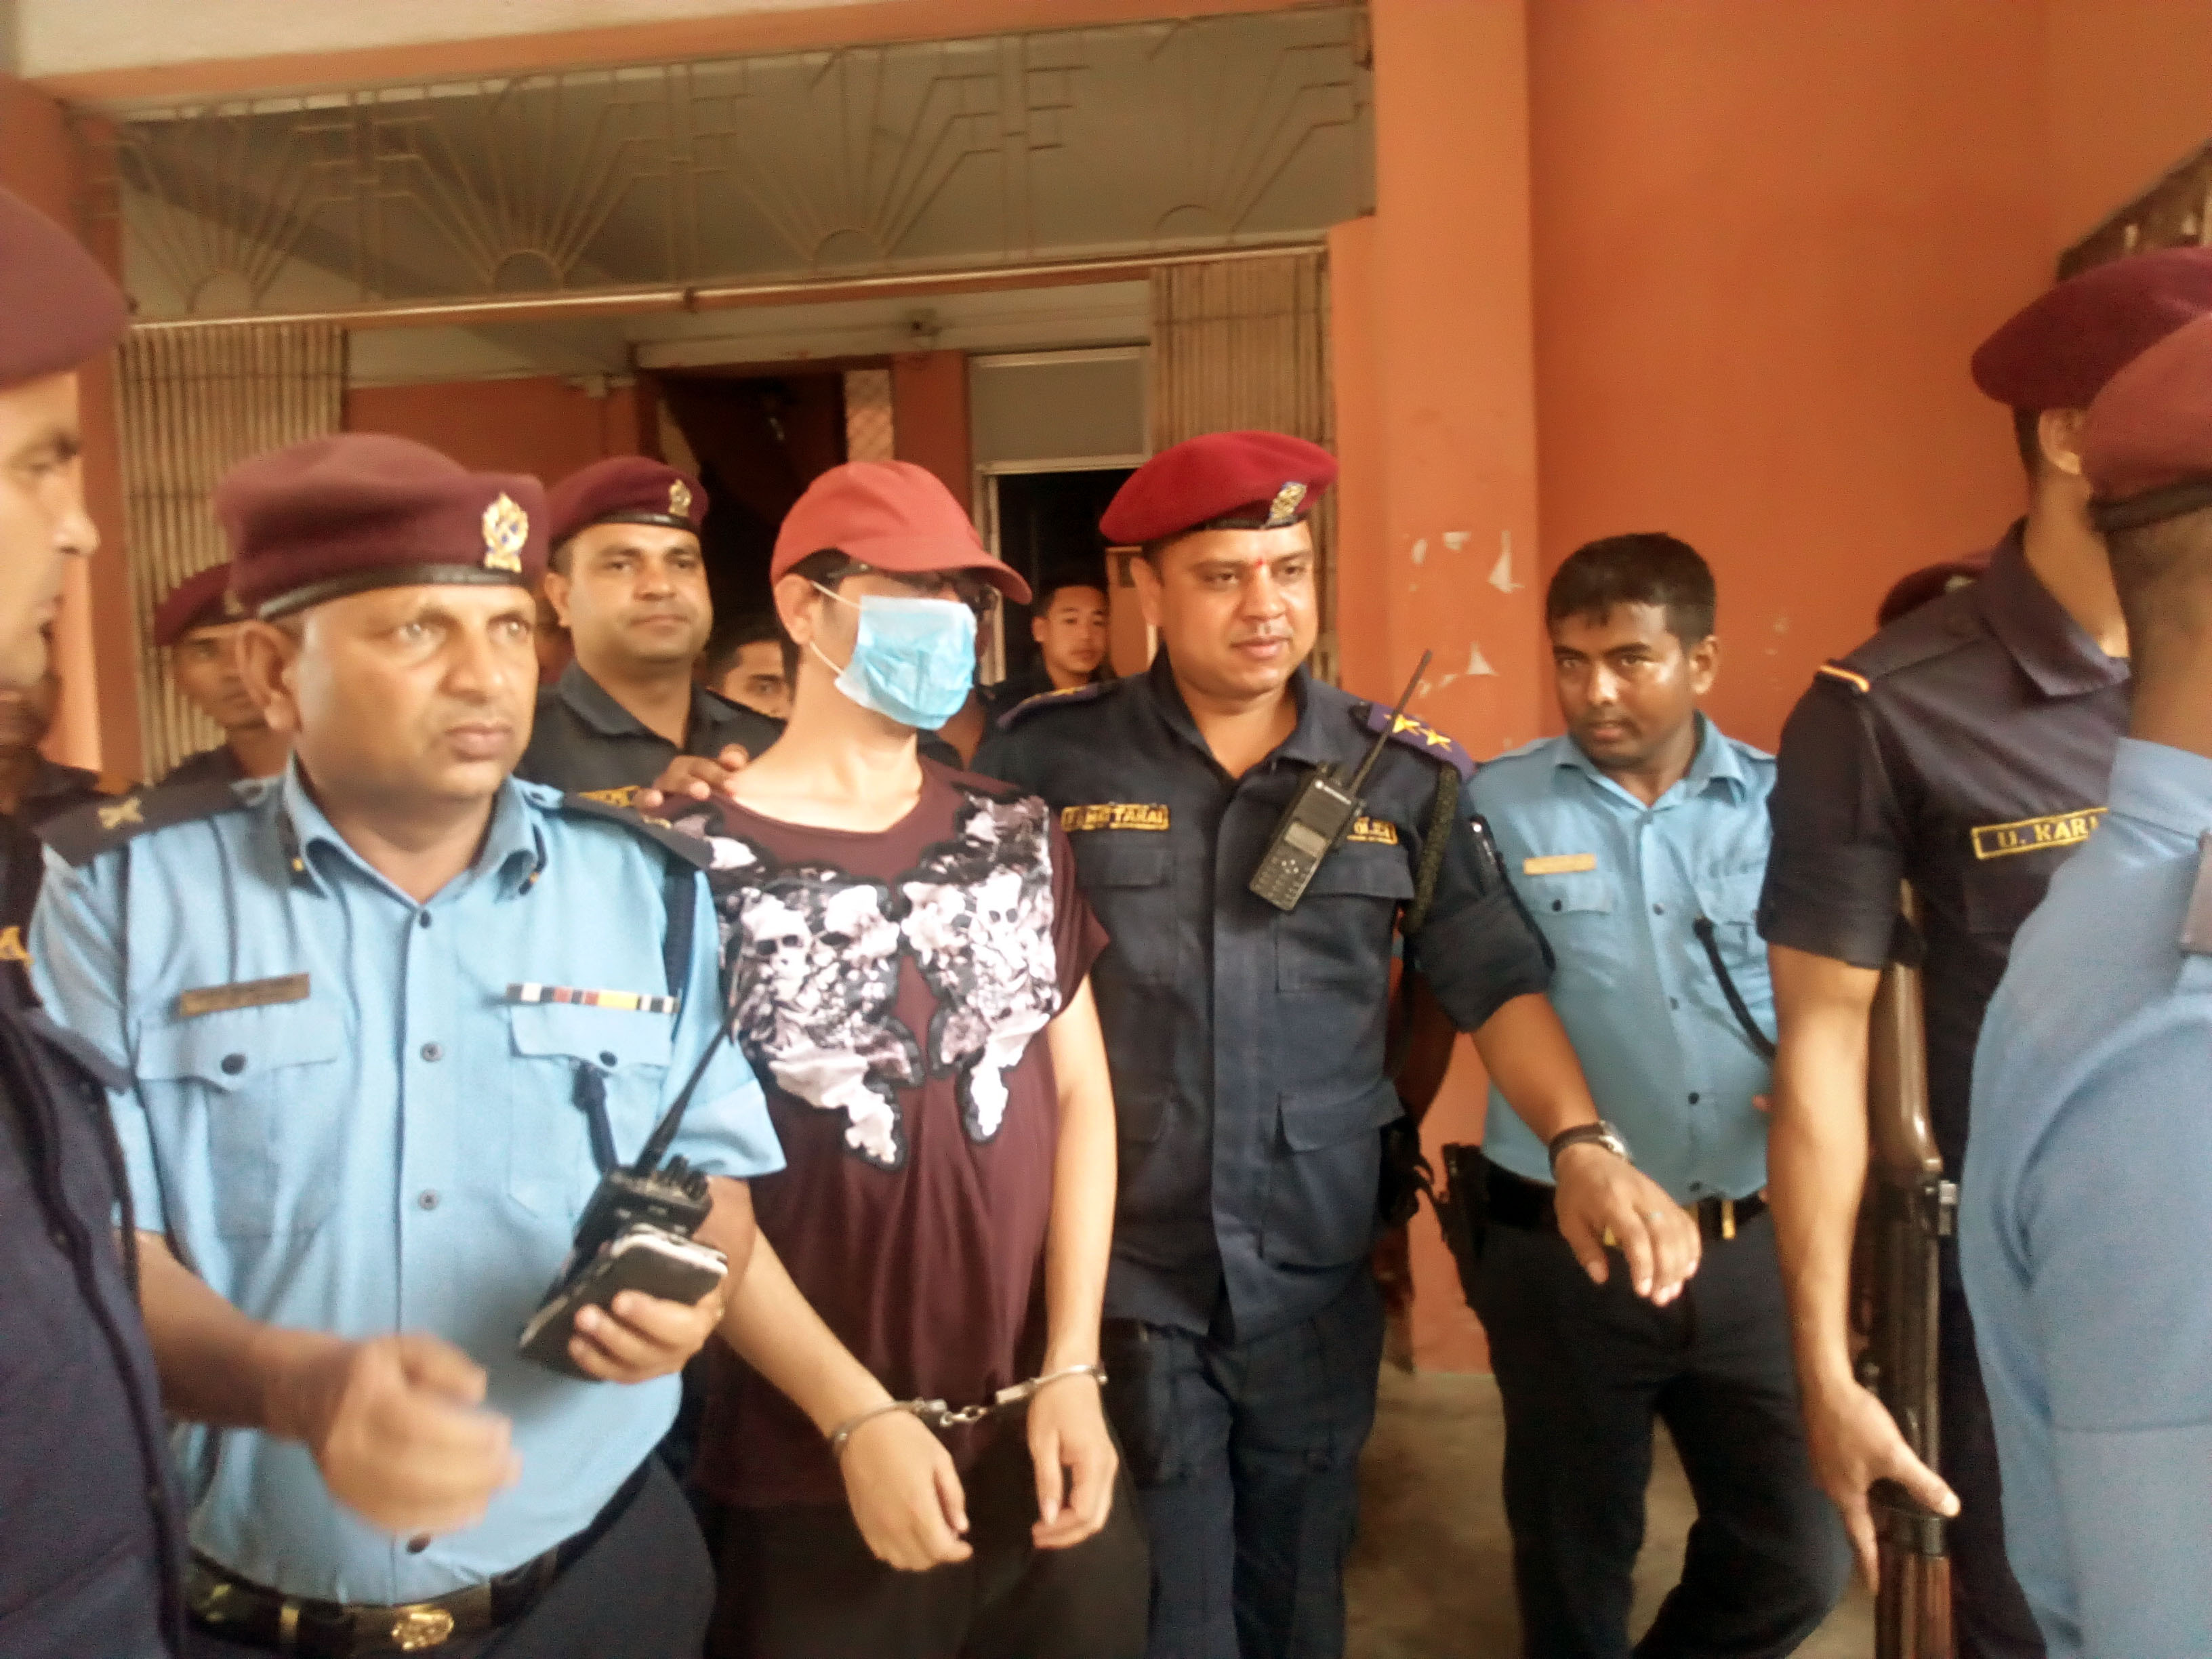 Police Officers are seen at the premises of District Court, Morang taking the alleged mastermind of the gold smuggling and murder case, Chudamani Upreti (Gorey) back to custody at District Police Office after the court recorded his statement on Friday, May 25, 2018. Photo: Hari Adhikari